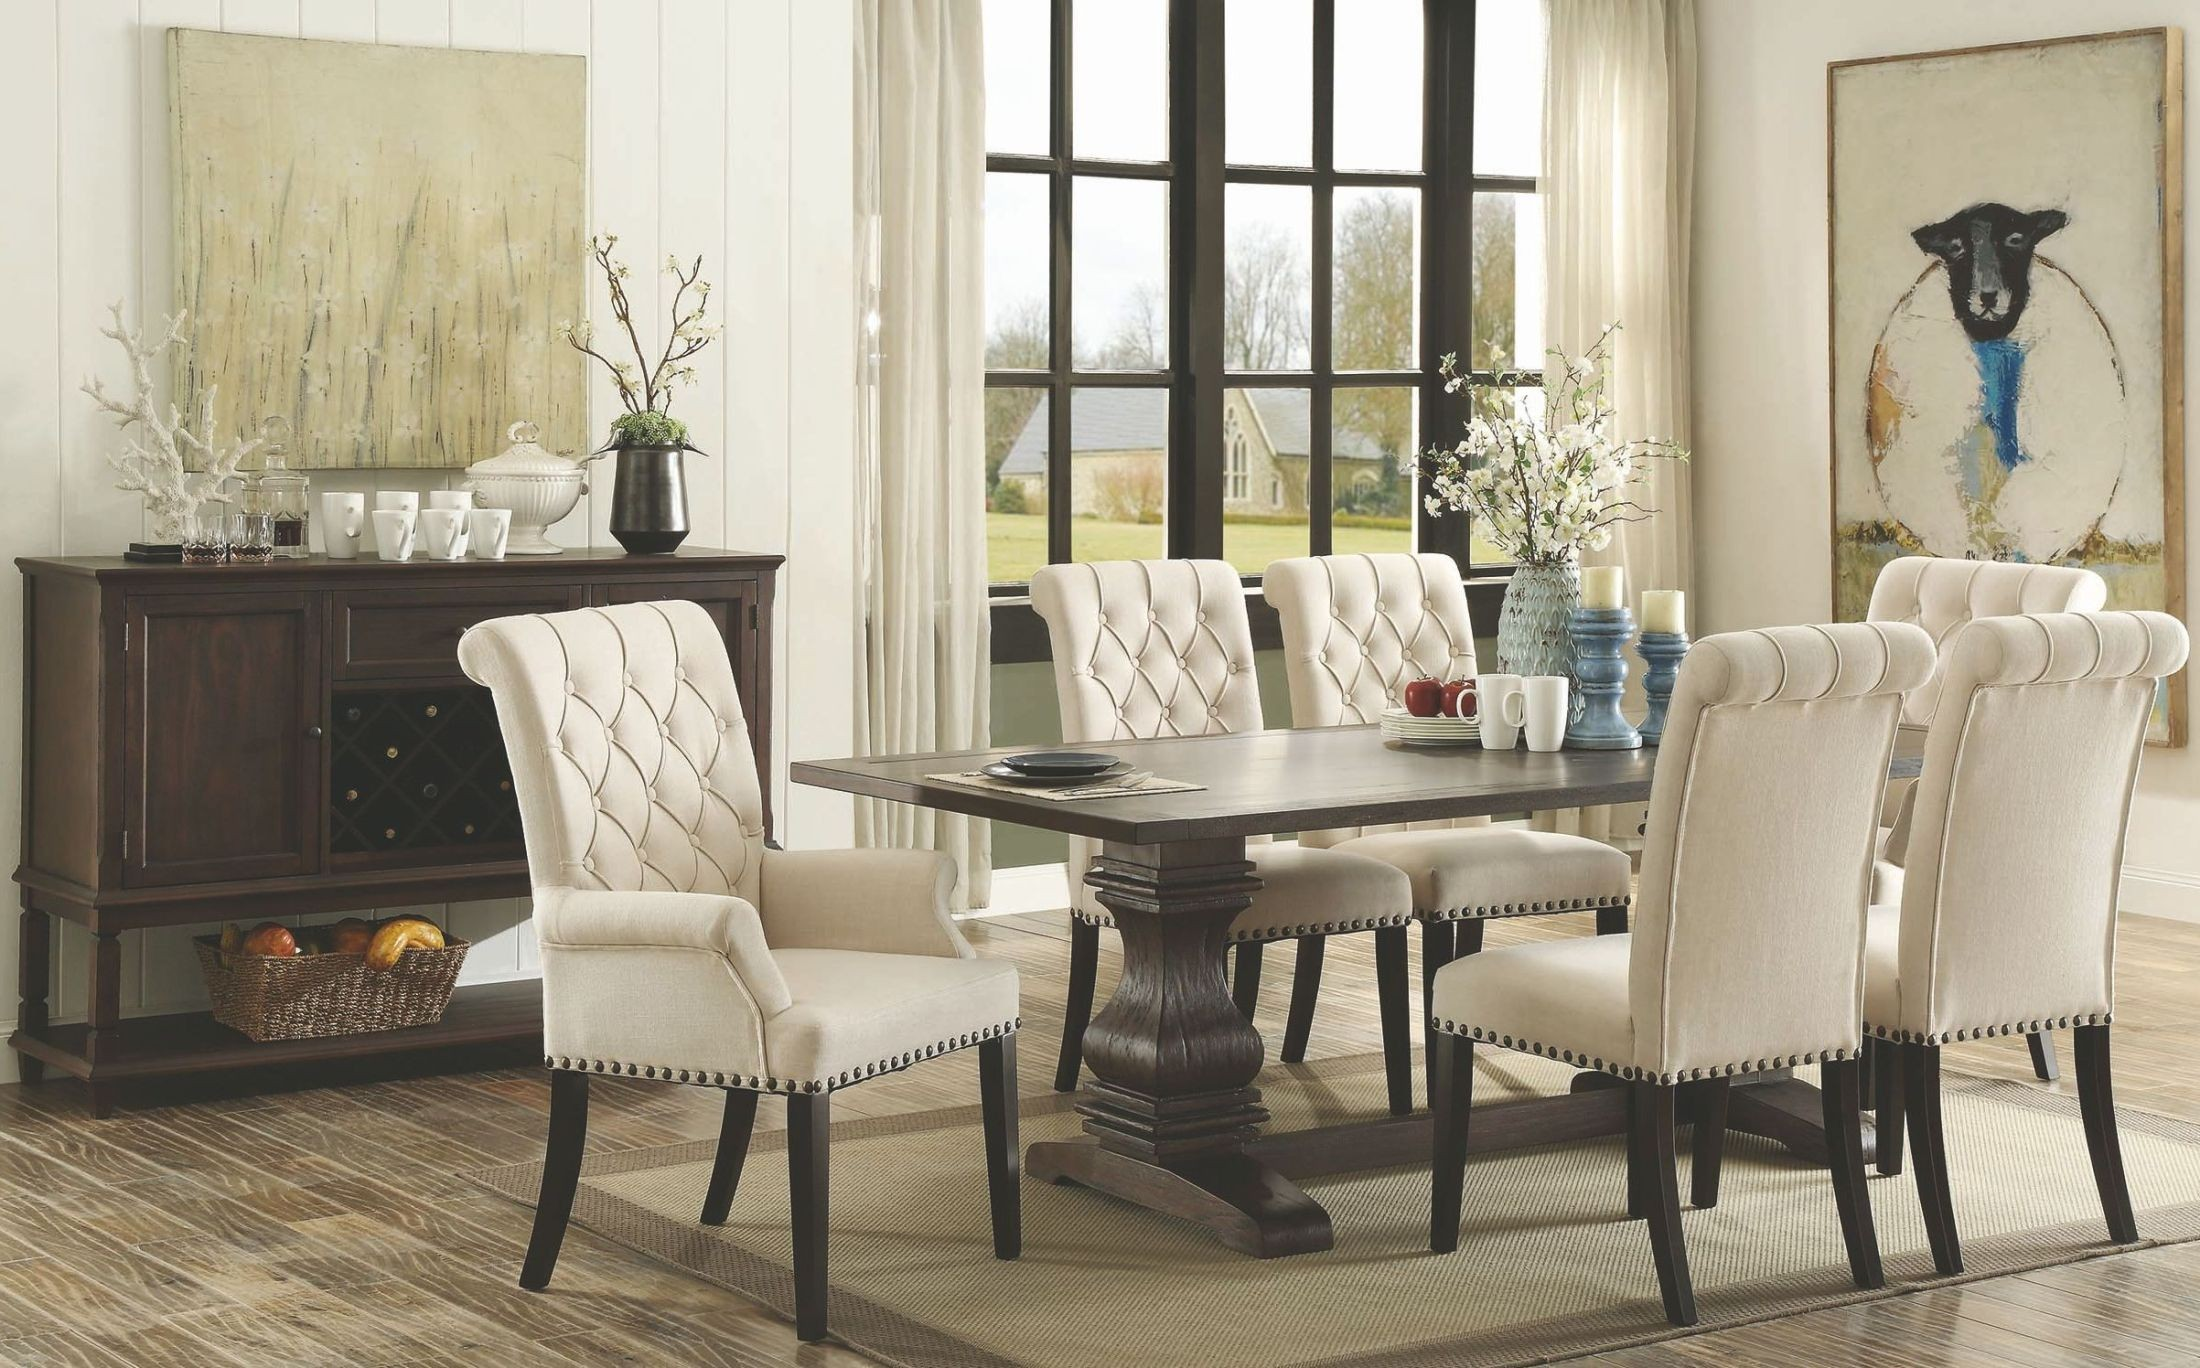 Dining Room Furniture Rustic Parkins Rustic Espresso Rectangular Dining Room Set From